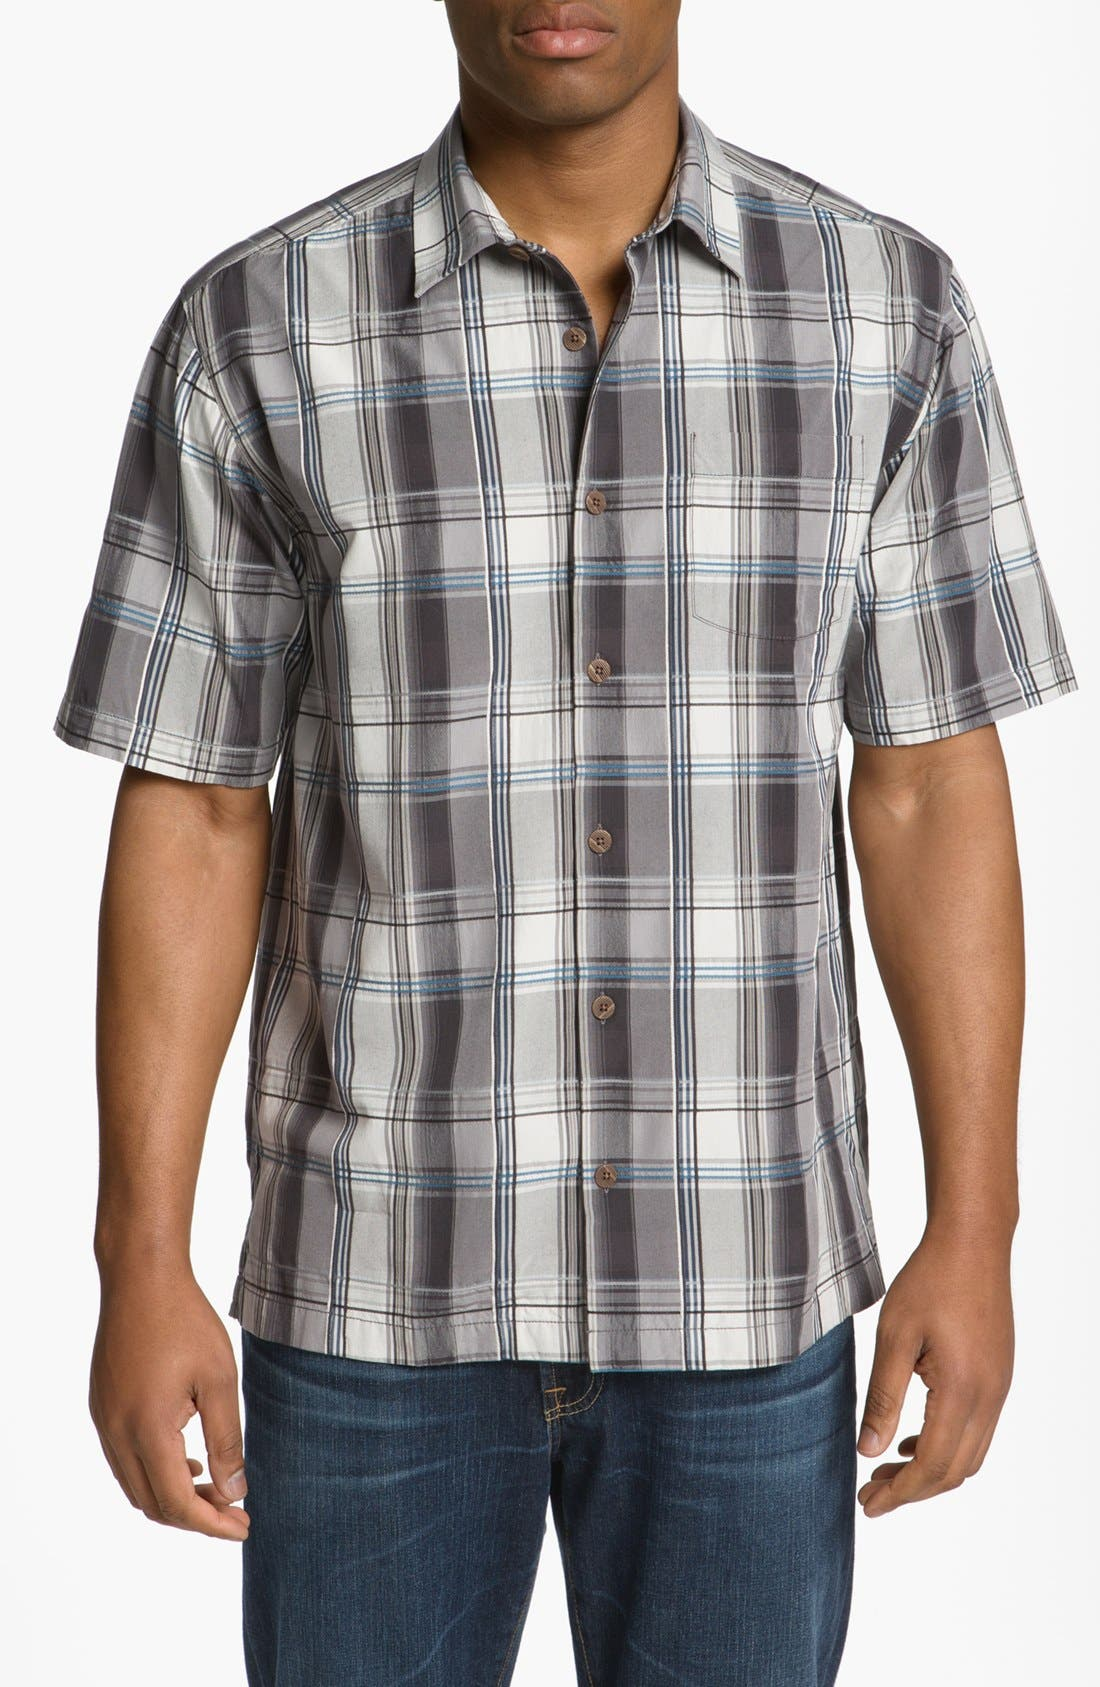 Main Image - Tommy Bahama 'Palace Plaid' Silk Campshirt